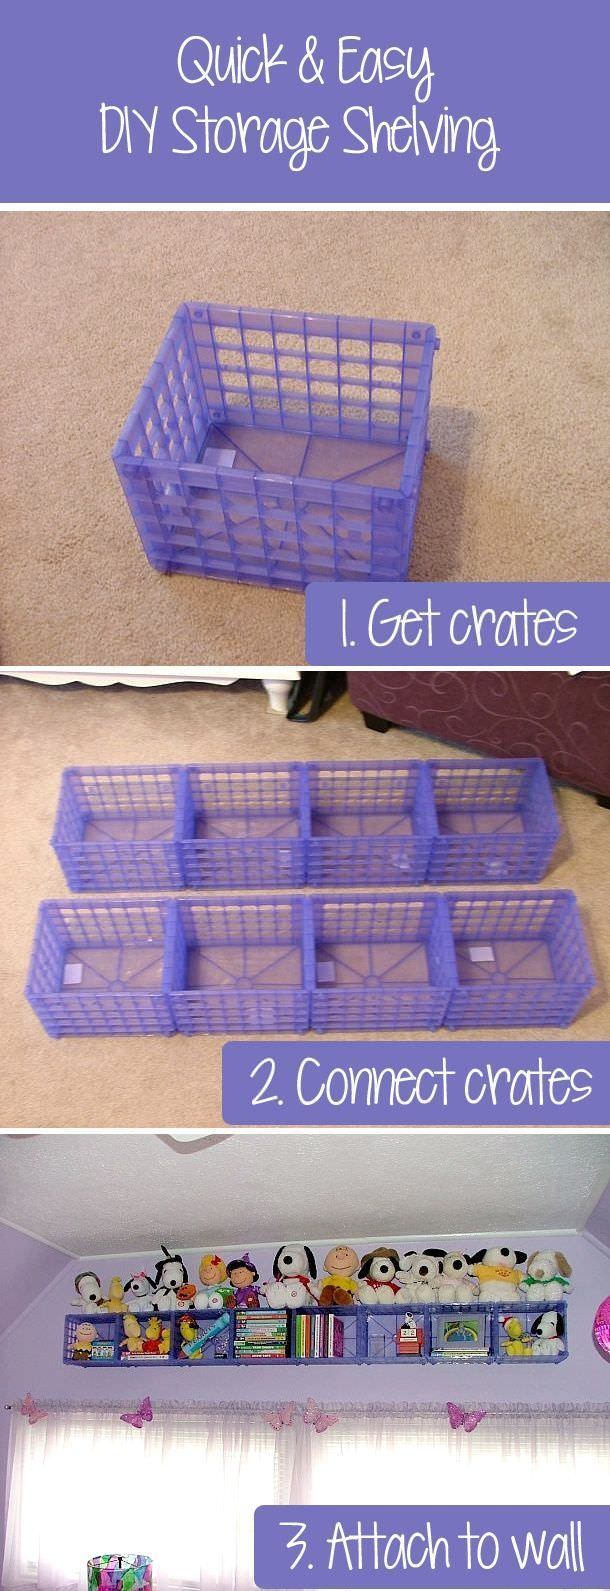 DIY Quick and Easy Storage Shelving using dollar store crates. Great for kids' rooms! Creative Ideas Quirky Ideas